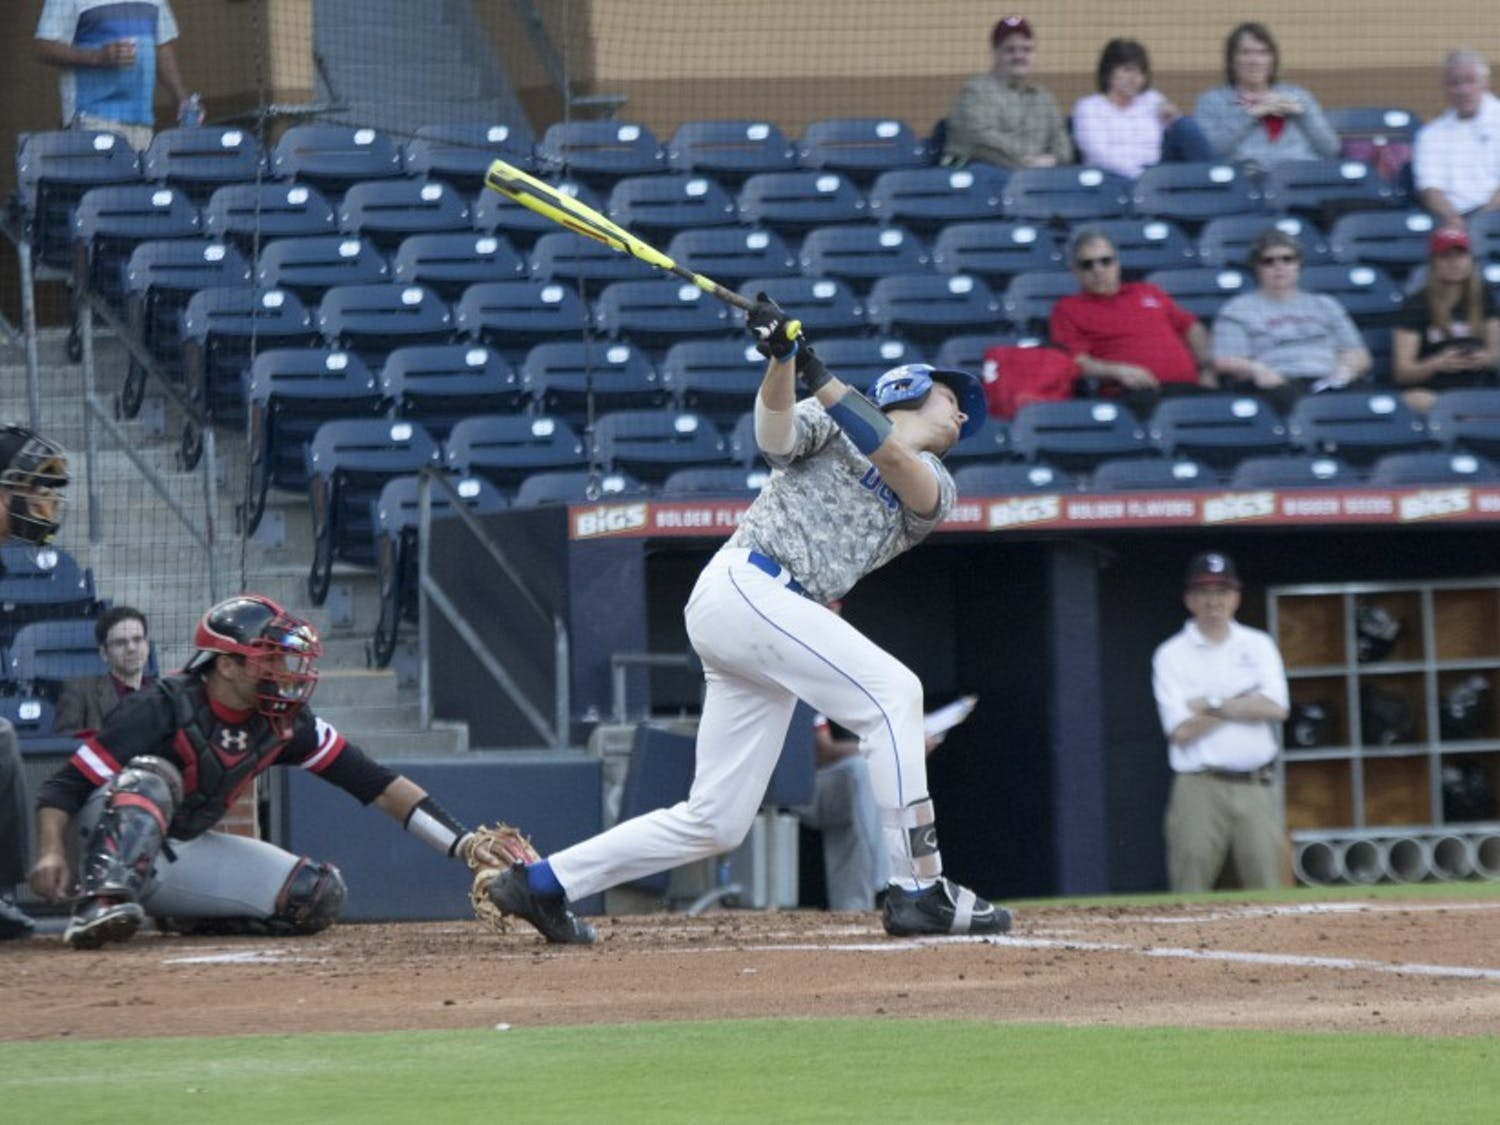 Catcher Chris Proctor was one of five Blue Devils to register multiple hits in the team's Wednesday night win at Campbell, going 2-for-5 with a run scored.